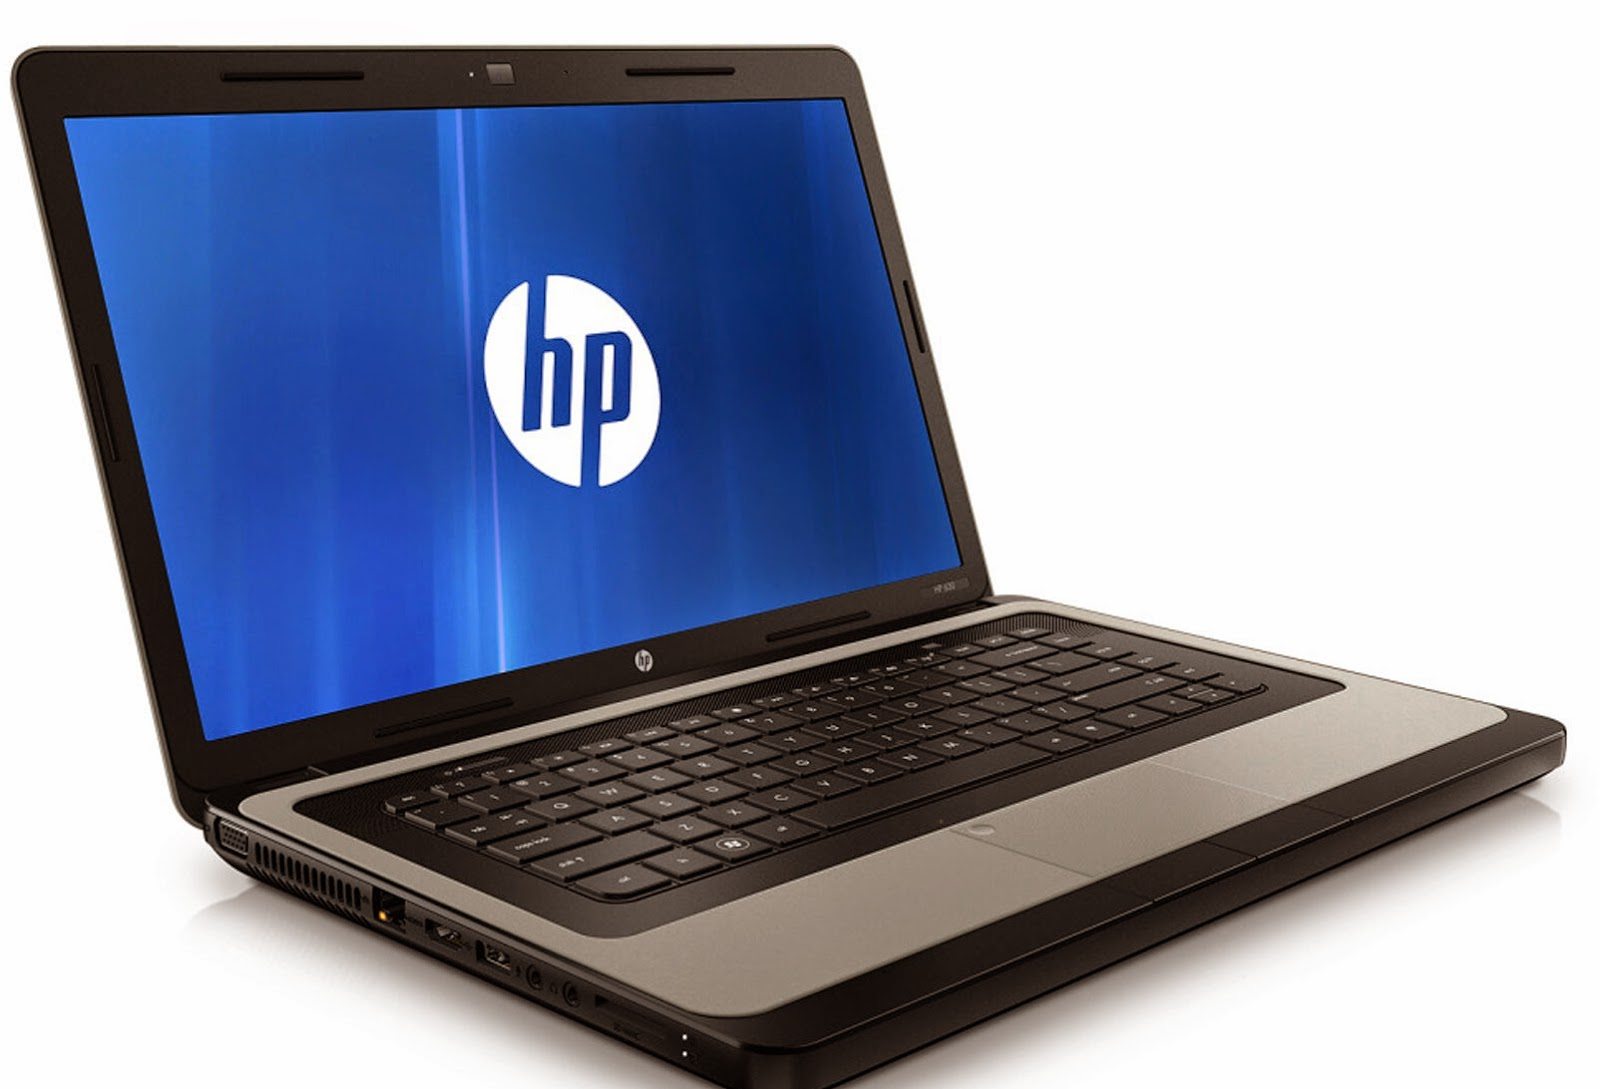 HP 240 G1 Drivers For Windows 7 (32/64bit)